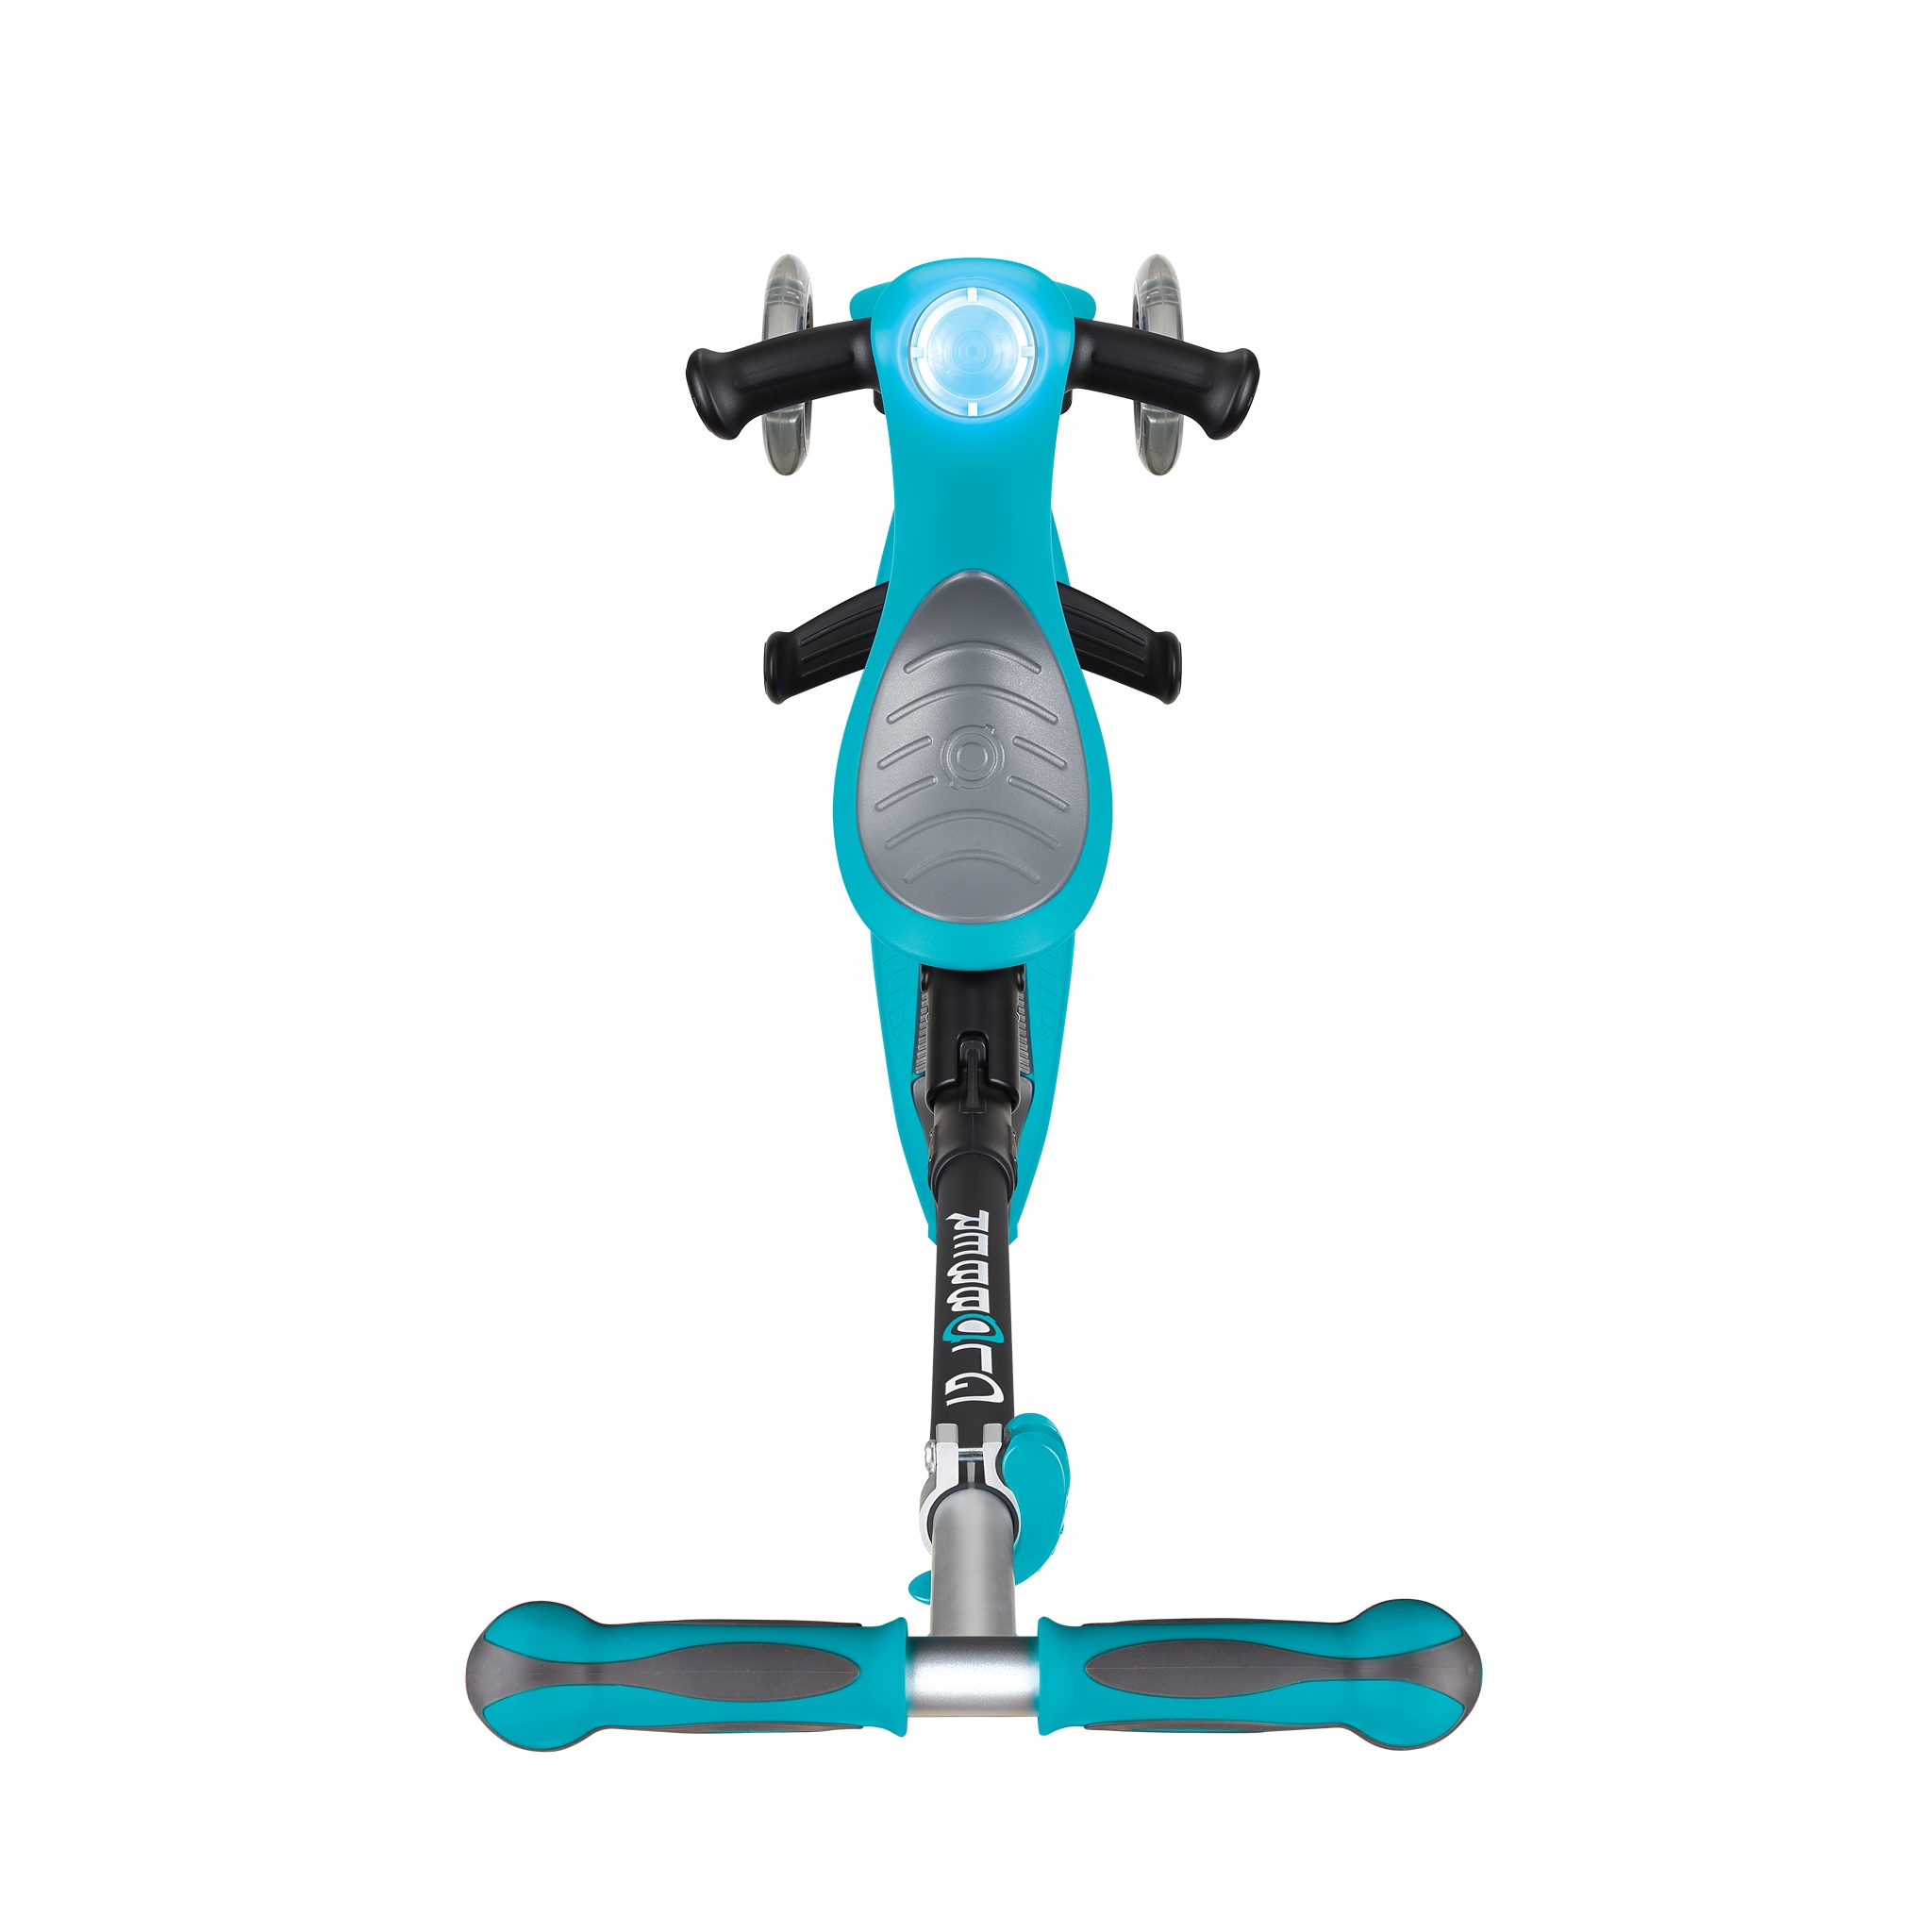 GO-UP-DELUXE-PLAY-ride-on-walking-bike-scooter-with-light-and-sound-module-and-extra-wide-3-height-adjustable-seat-teal 2